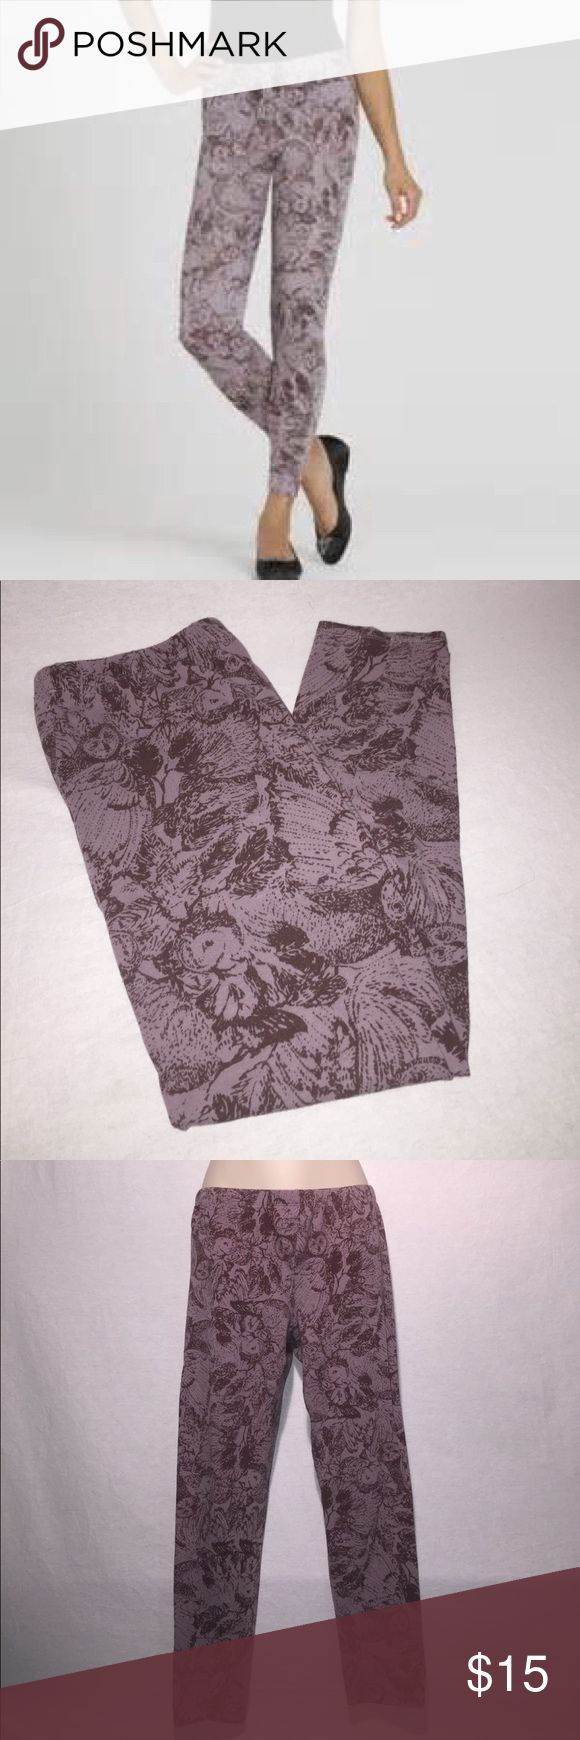 French Connection Purple Owl Leggings Cute soft purple owl leggings. Light signs of piling in crotch region. Otherwise in excellent condition. French Connection Pants Leggings